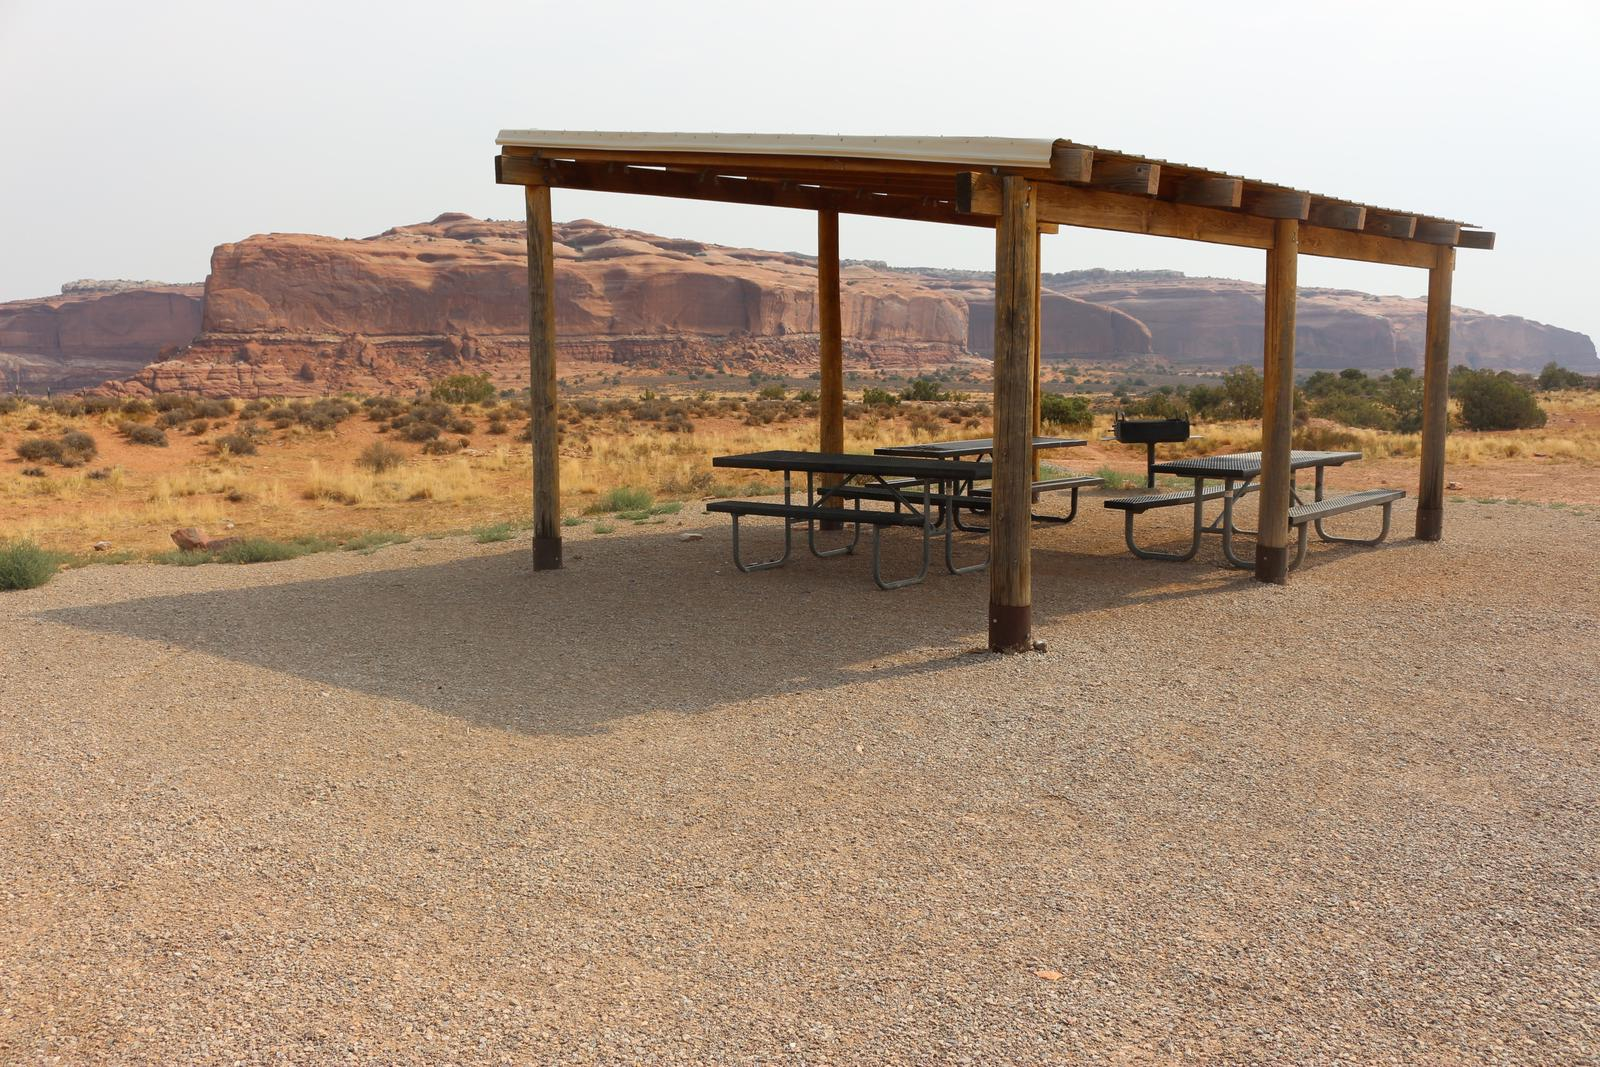 Close up of the Lone Mesa Group Site B shade shelter and picnic tables.